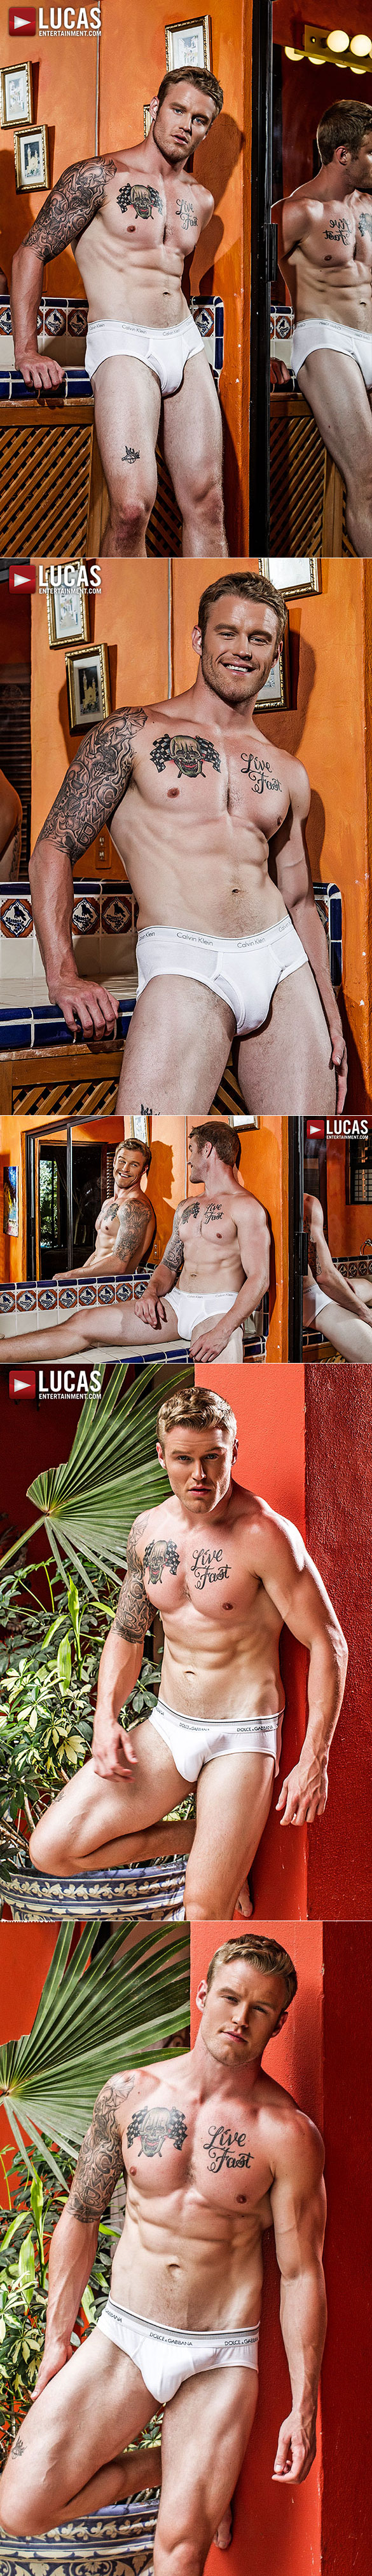 """Lucas Entertainment: Shawn Reeve rides Sean Xavier's enormous cock in """"Bareback Auditions 08: Fresh Additions"""""""